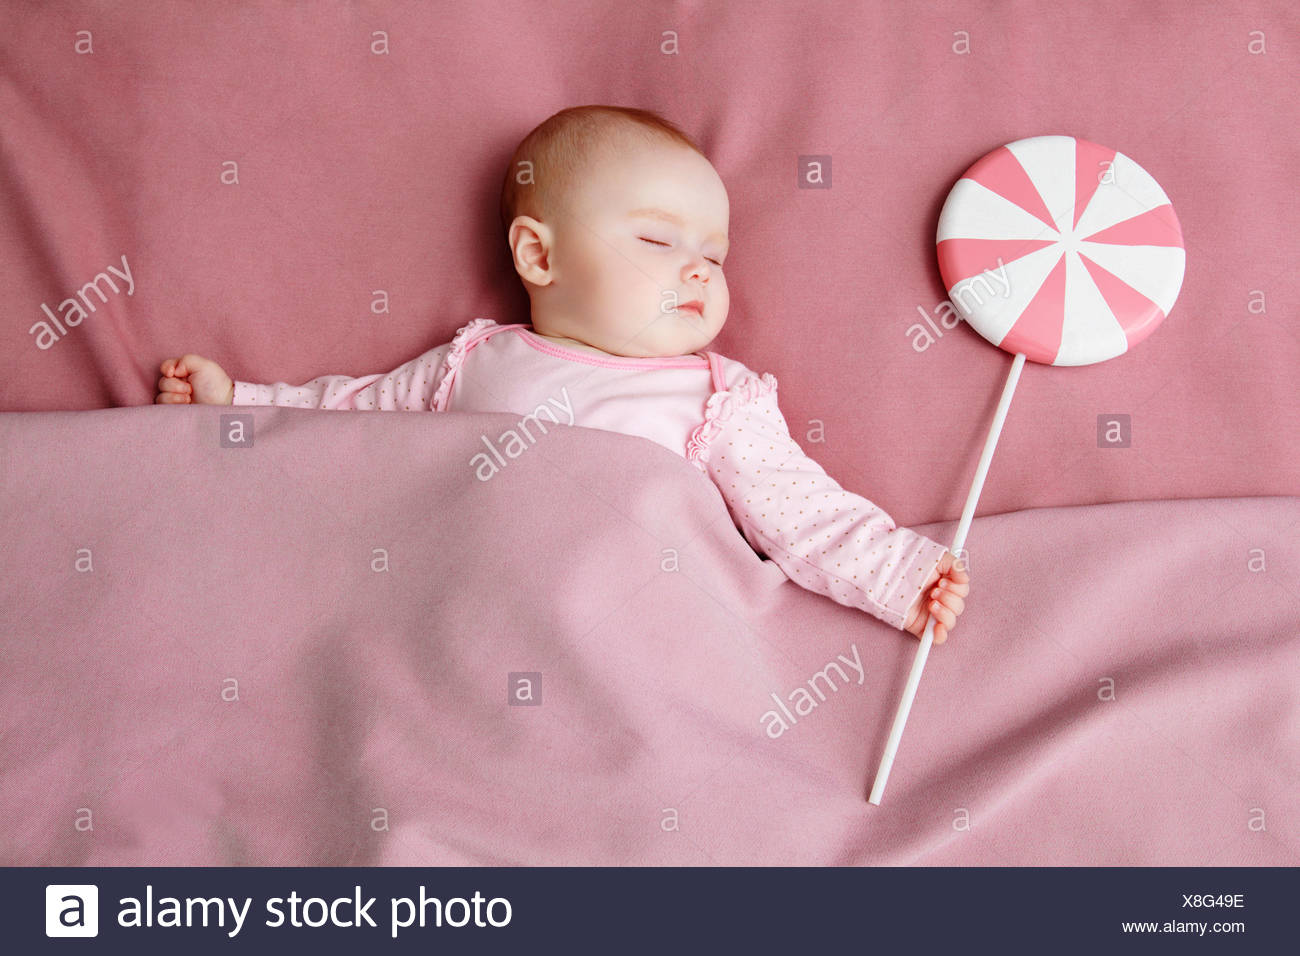 Baby girl sleeping in bed - Stock Image